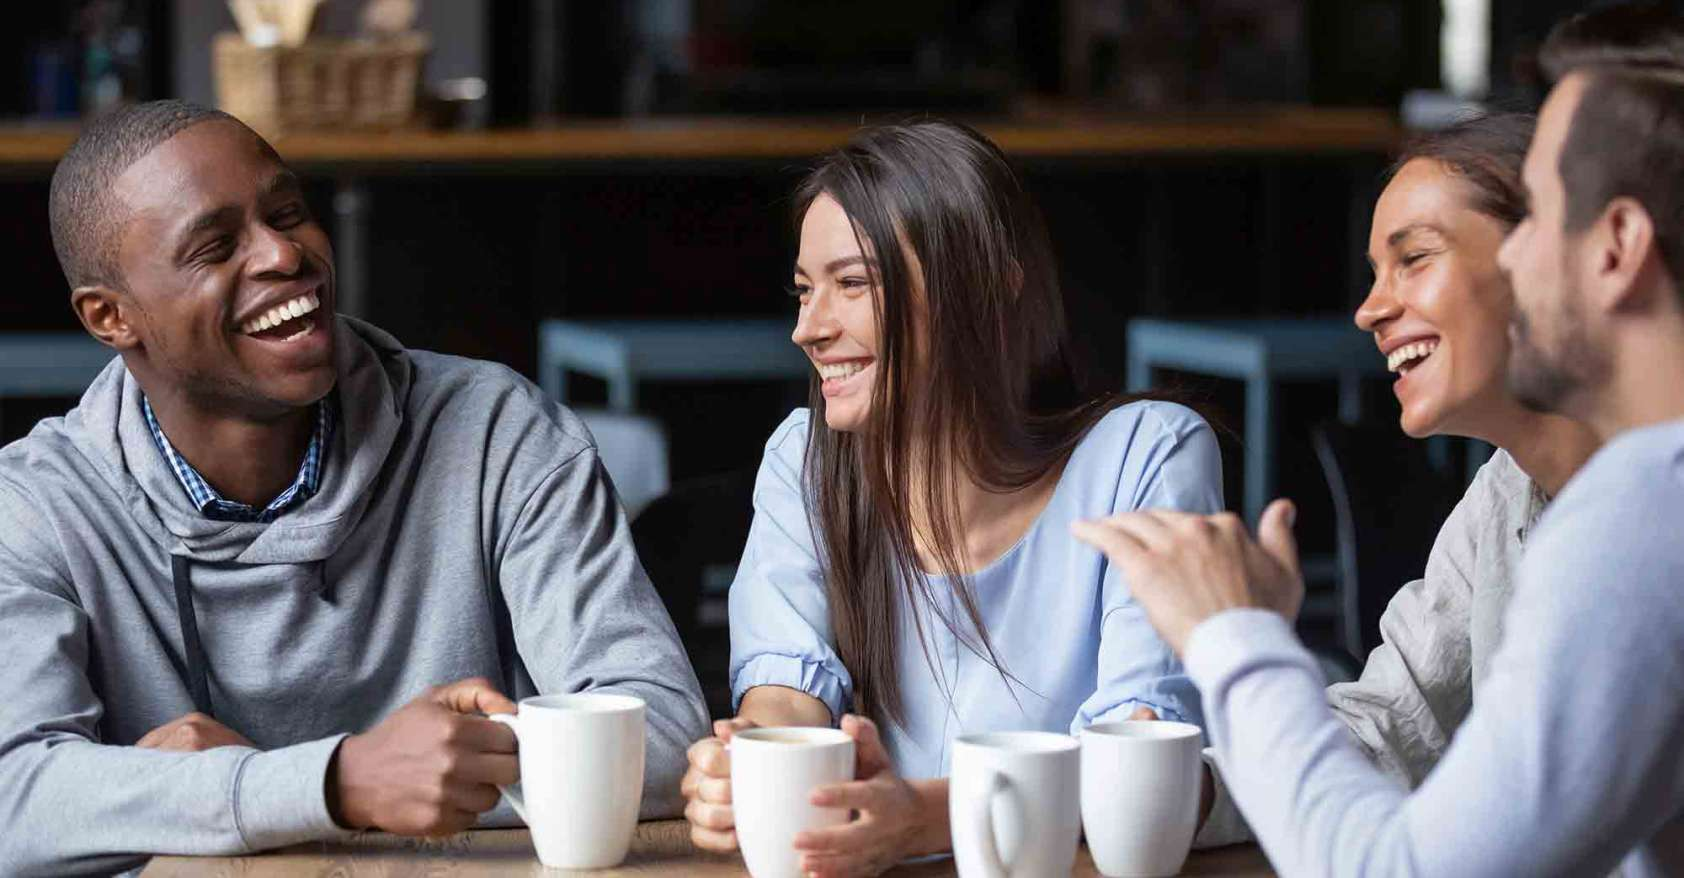 Four People Sitting at a table drinking coffee and smiling and telling stories